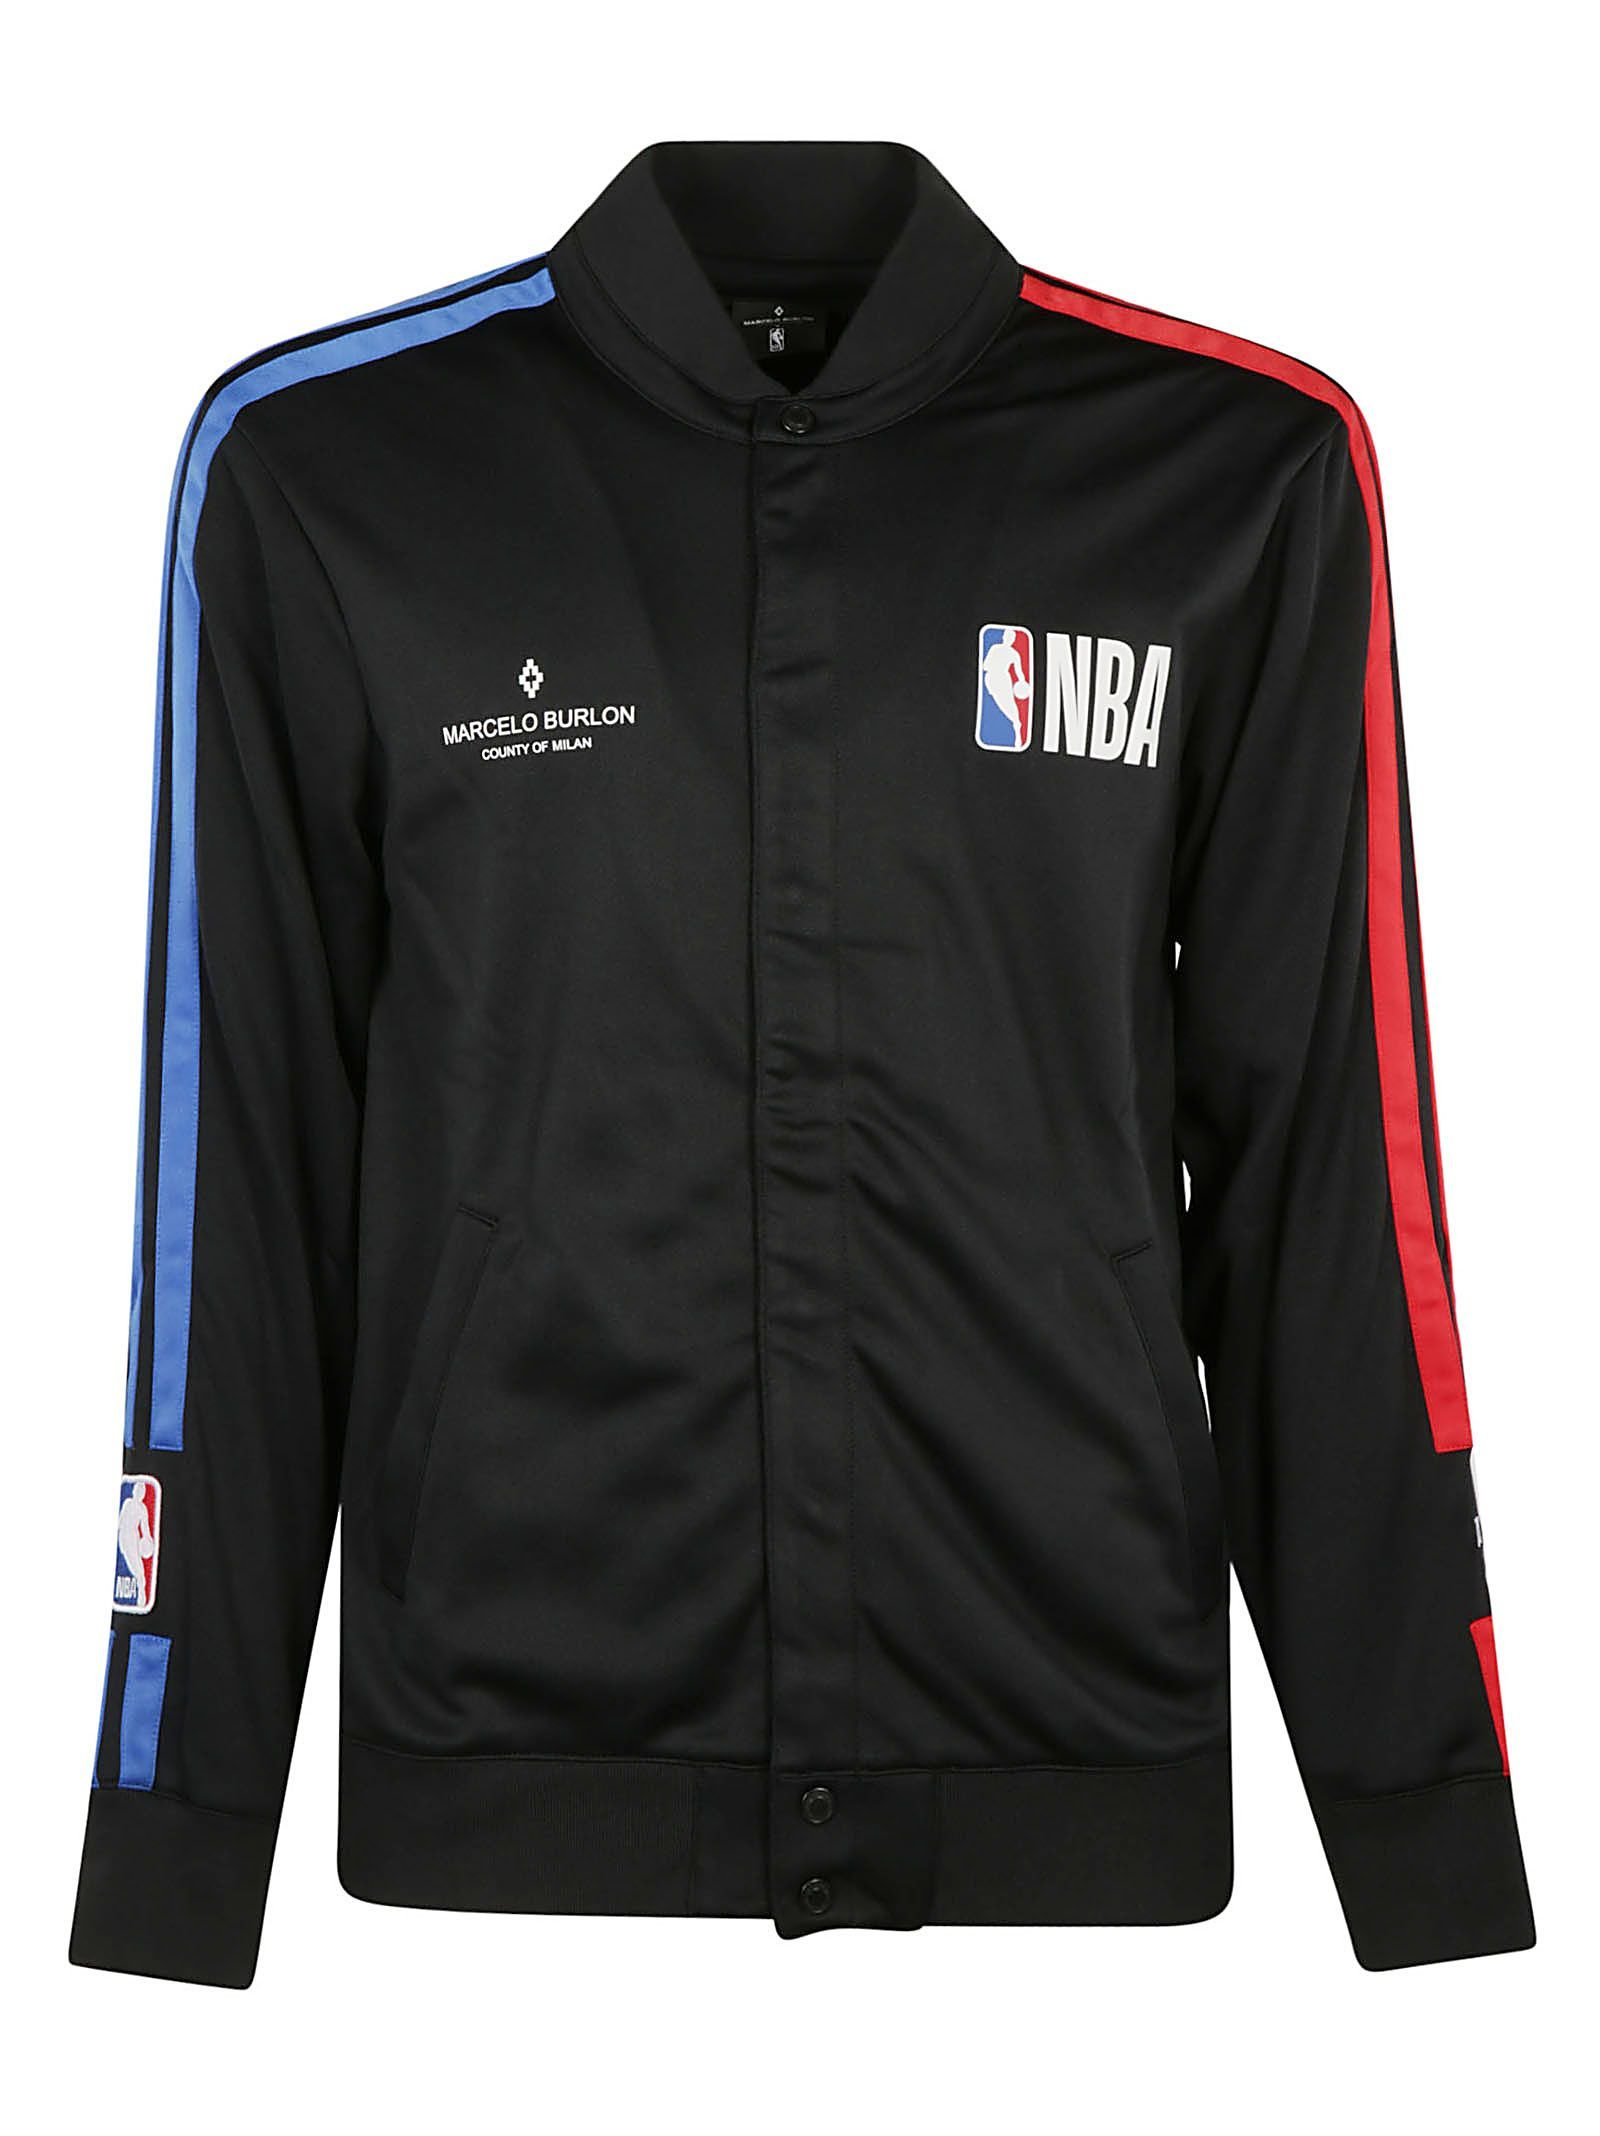 promo code 4c051 43077 MARCELO BURLON COUNTY OF MILAN NBA JACKET.  marceloburloncountyofmilan   cloth